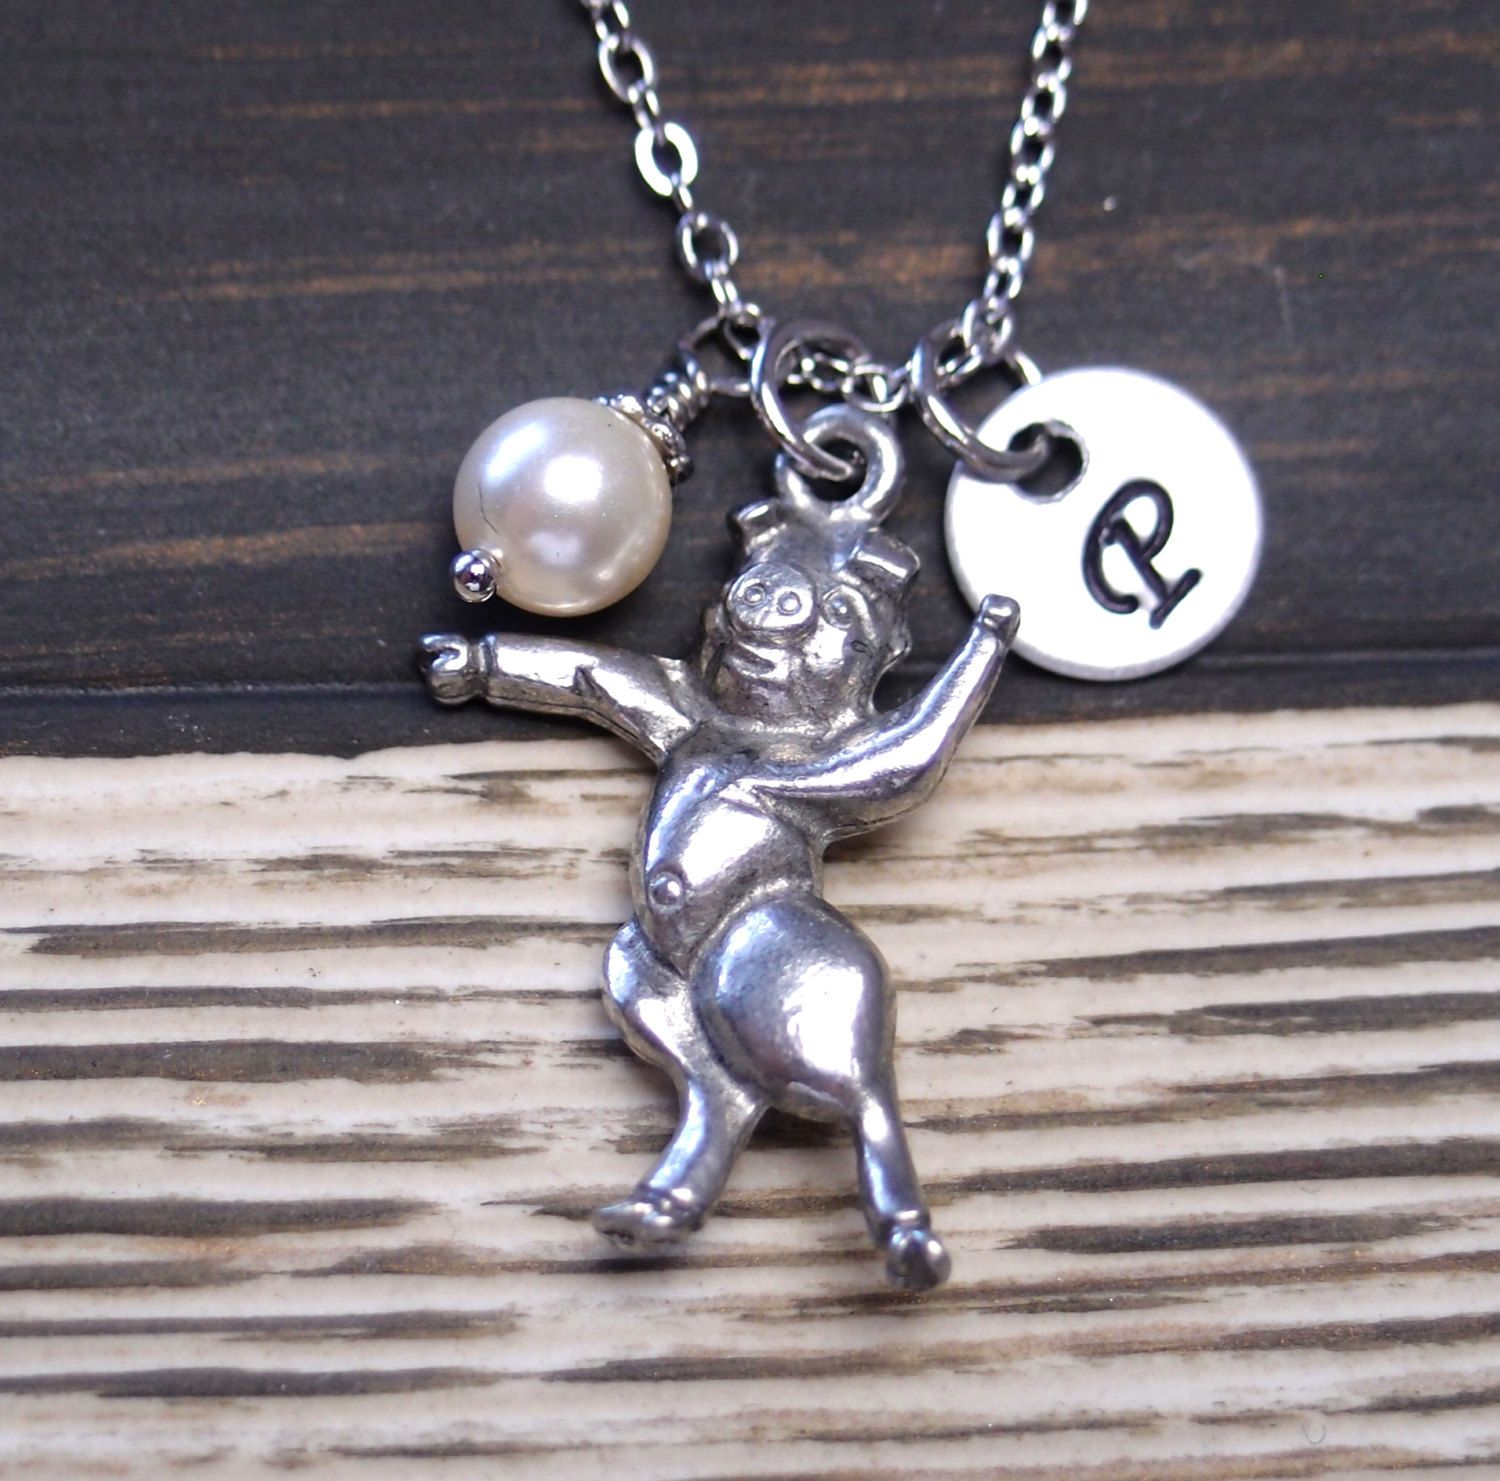 initial necklace, dancing pig necklace, Swarovski cream pearl, silver pig charm, fun necklace, animal charm, gift for her, Valentines Day - http://bit.ly/16bAK0o